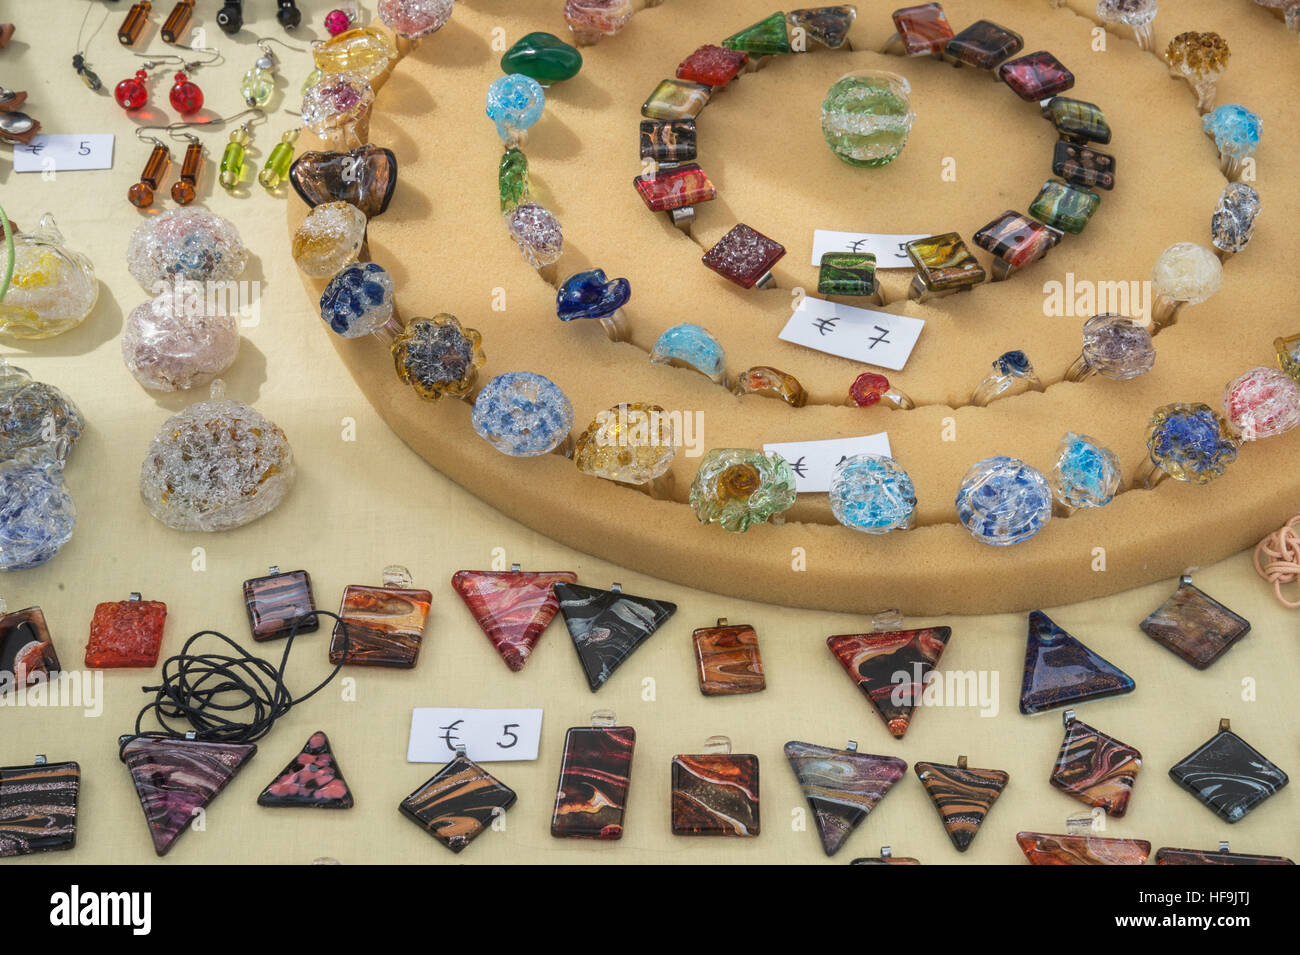 Bijoux en Verre, Palerme, Sicile, Italie, Europe, Photo Stock